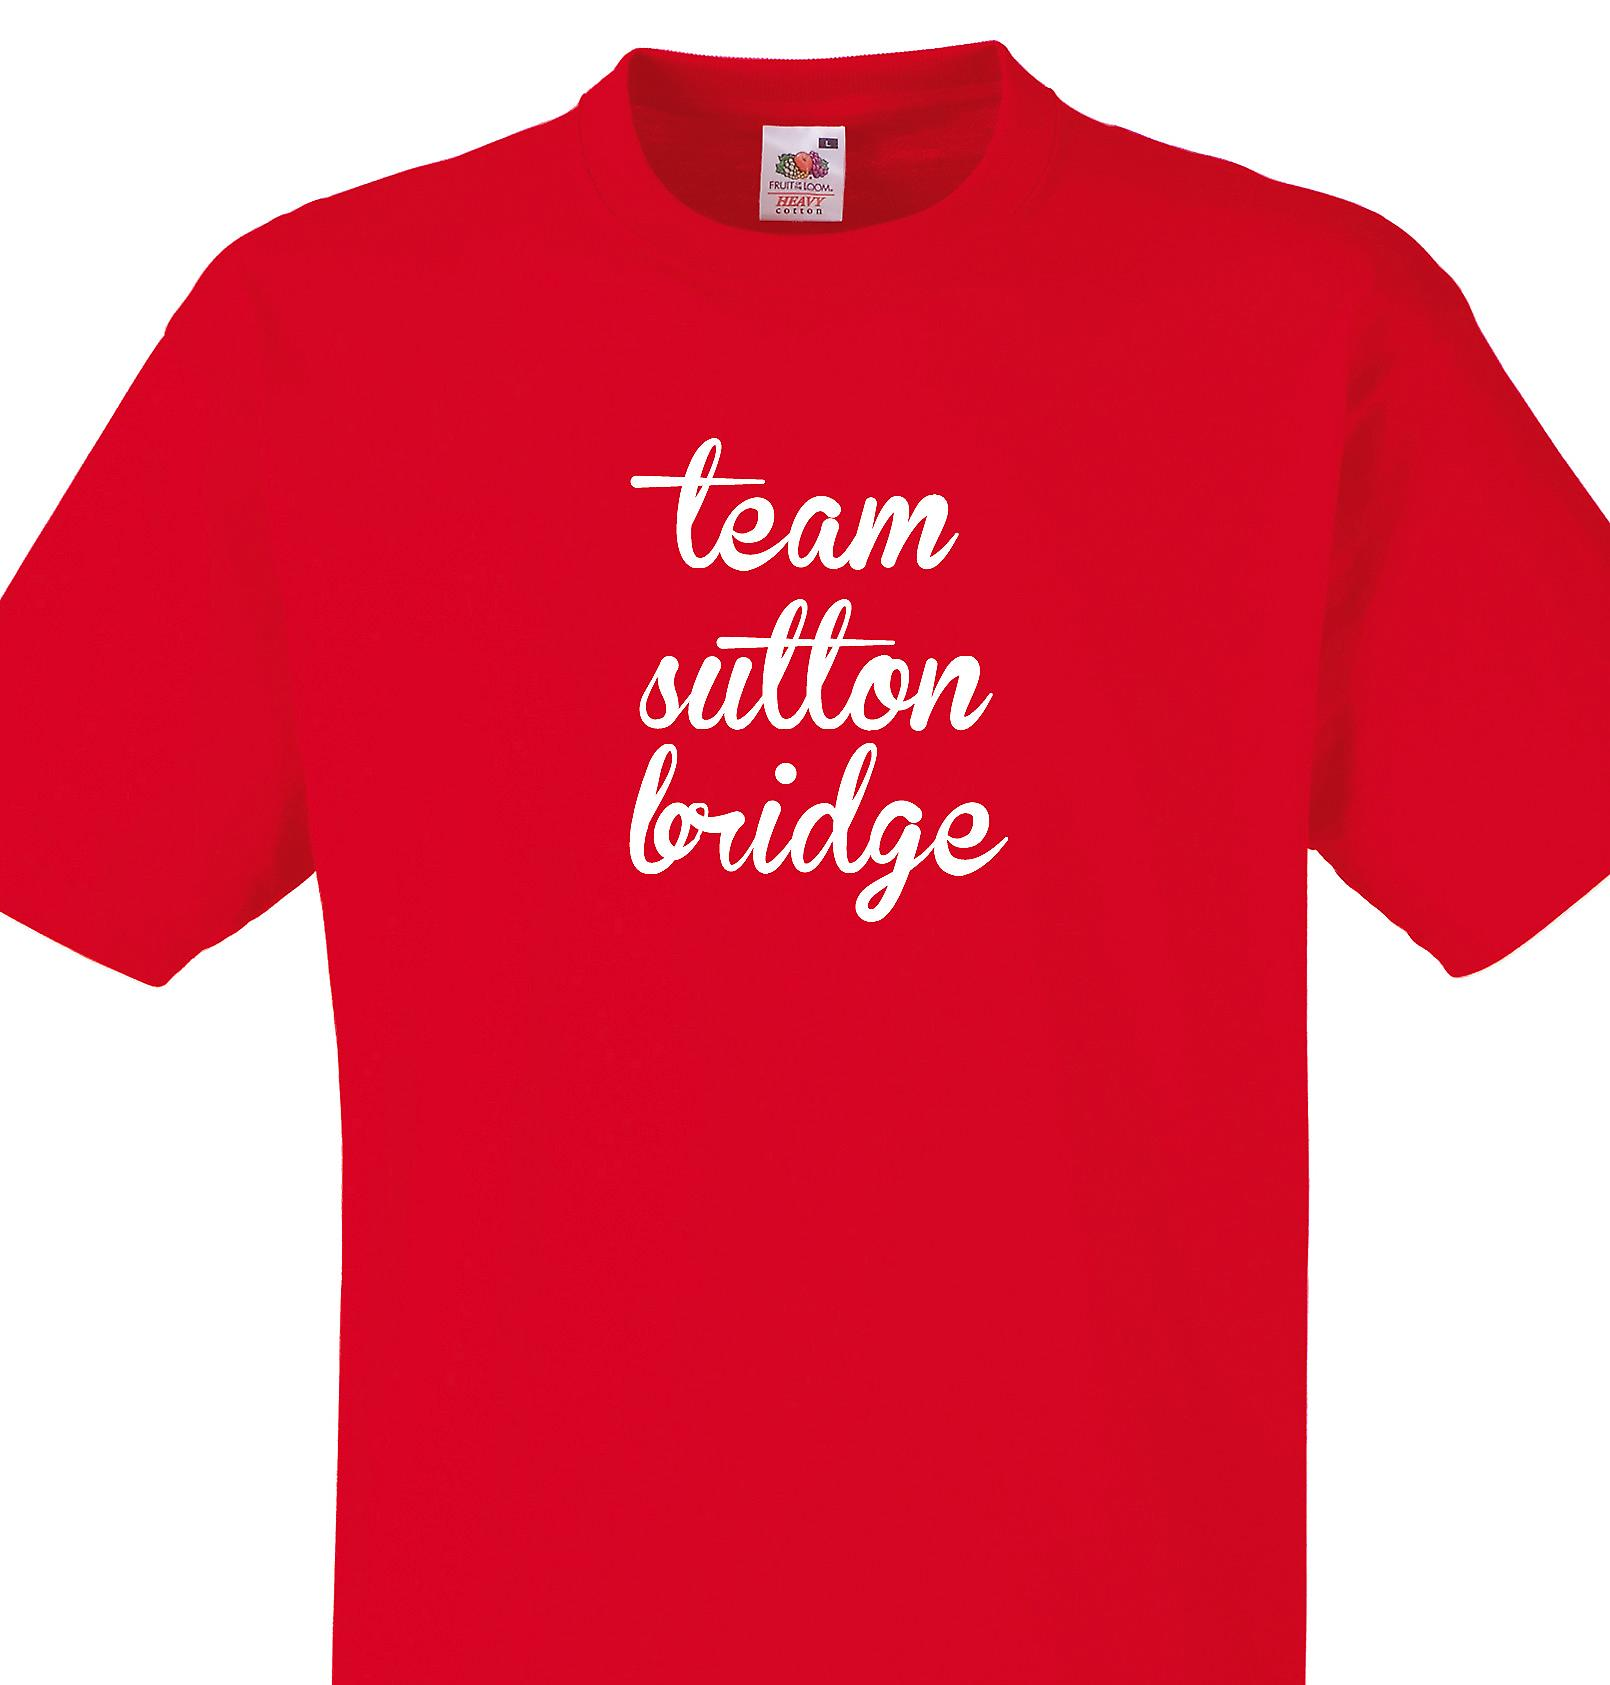 Team Sutton bridge Red T shirt